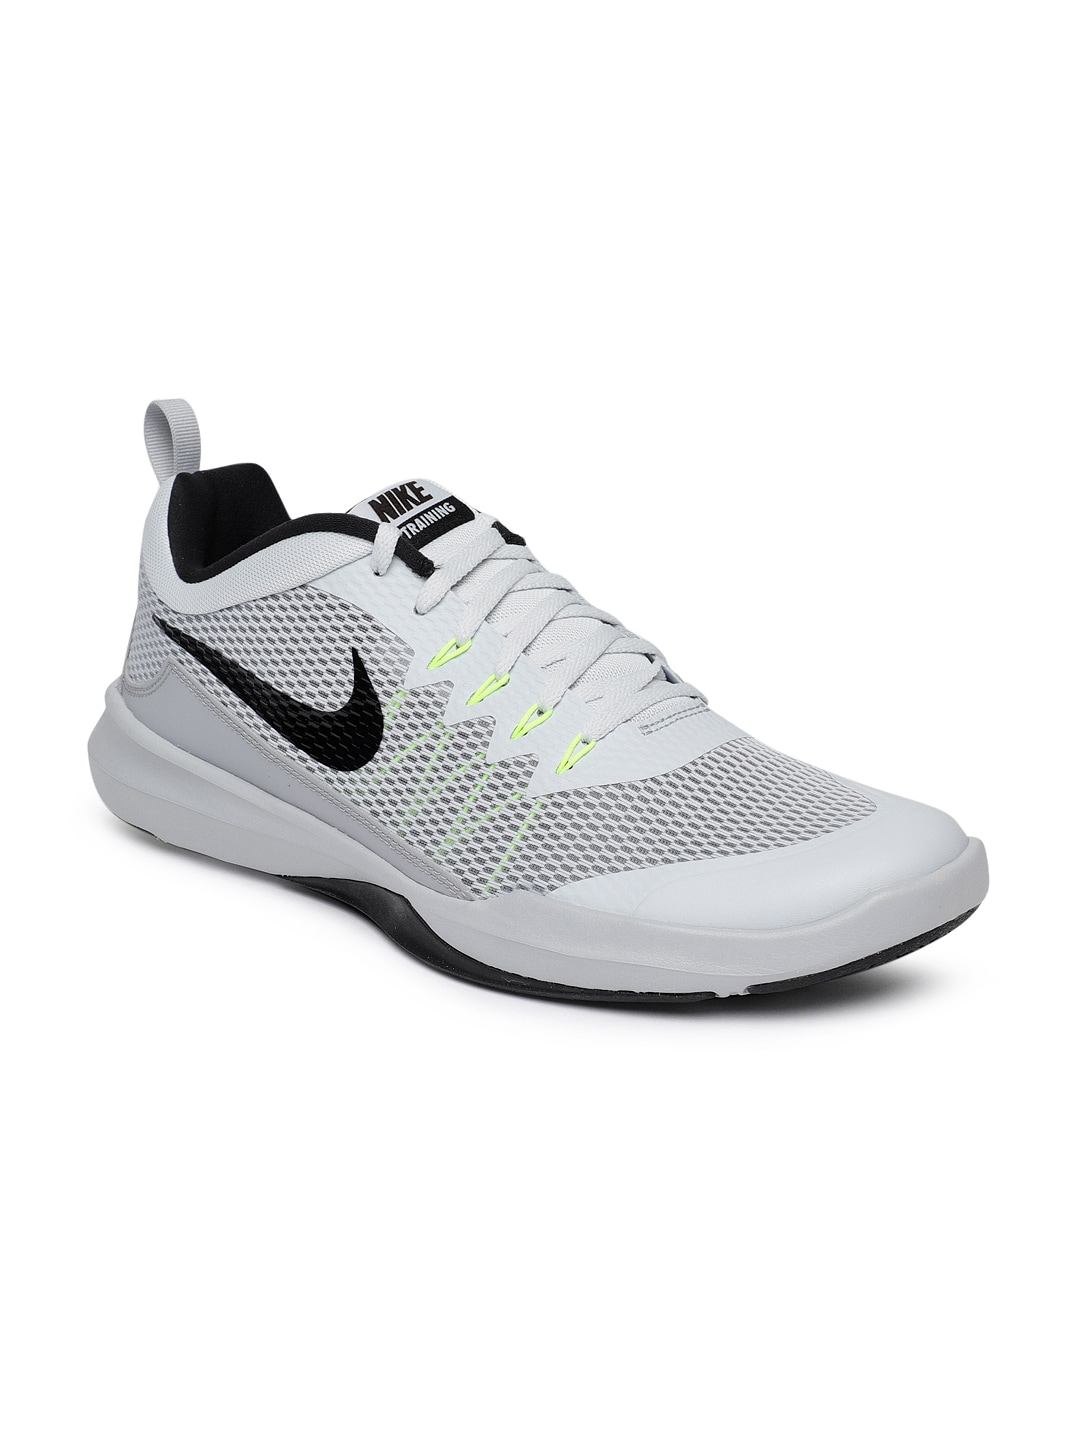 timeless design 63b0b f2cc7 Nike Shoes - Buy Nike Shoes for Men, Women   Kids Online   Myntra